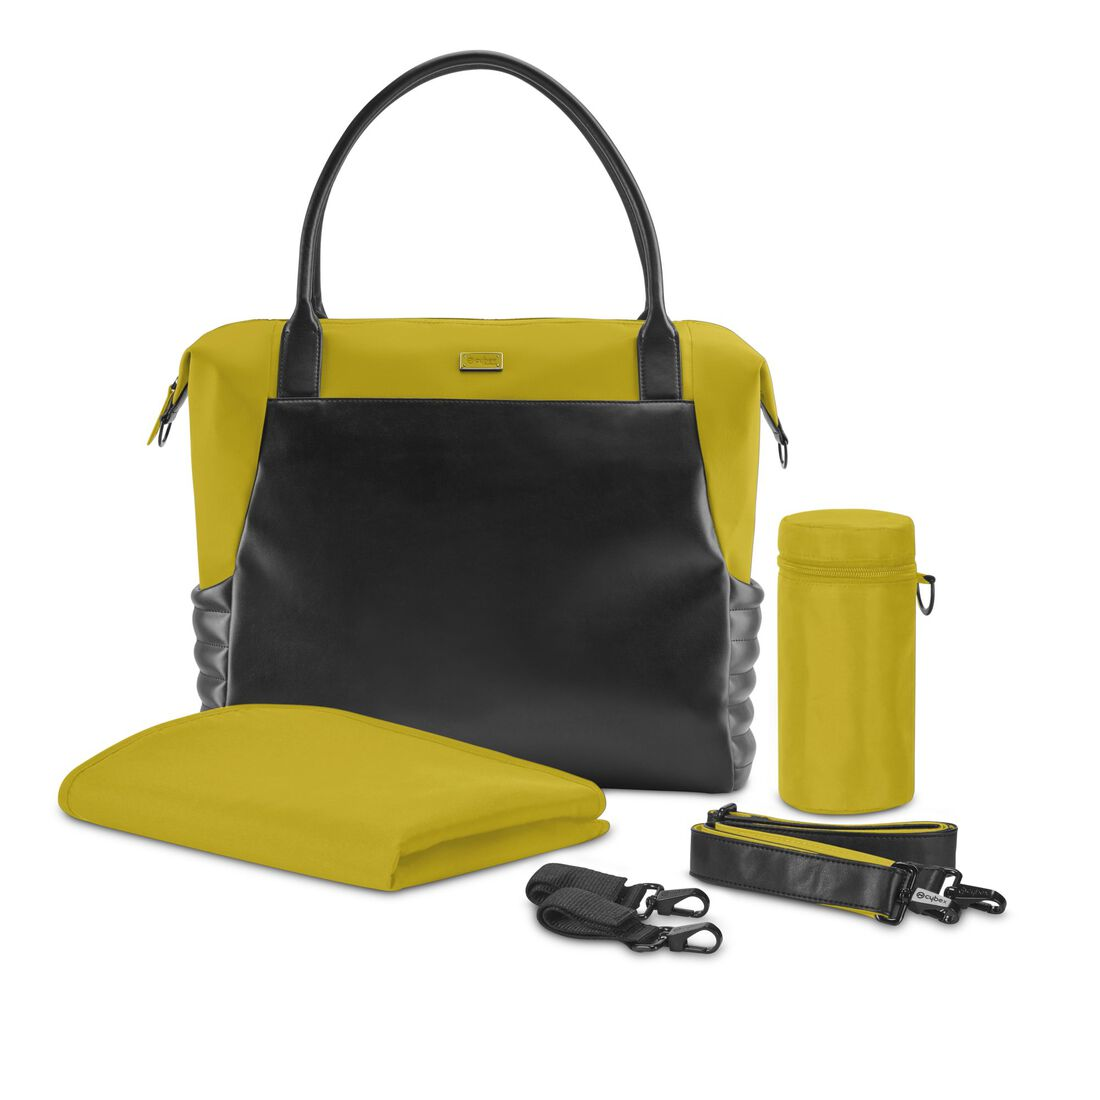 CYBEX Priam Changing Bag - Mustard Yellow in Mustard Yellow large image number 2